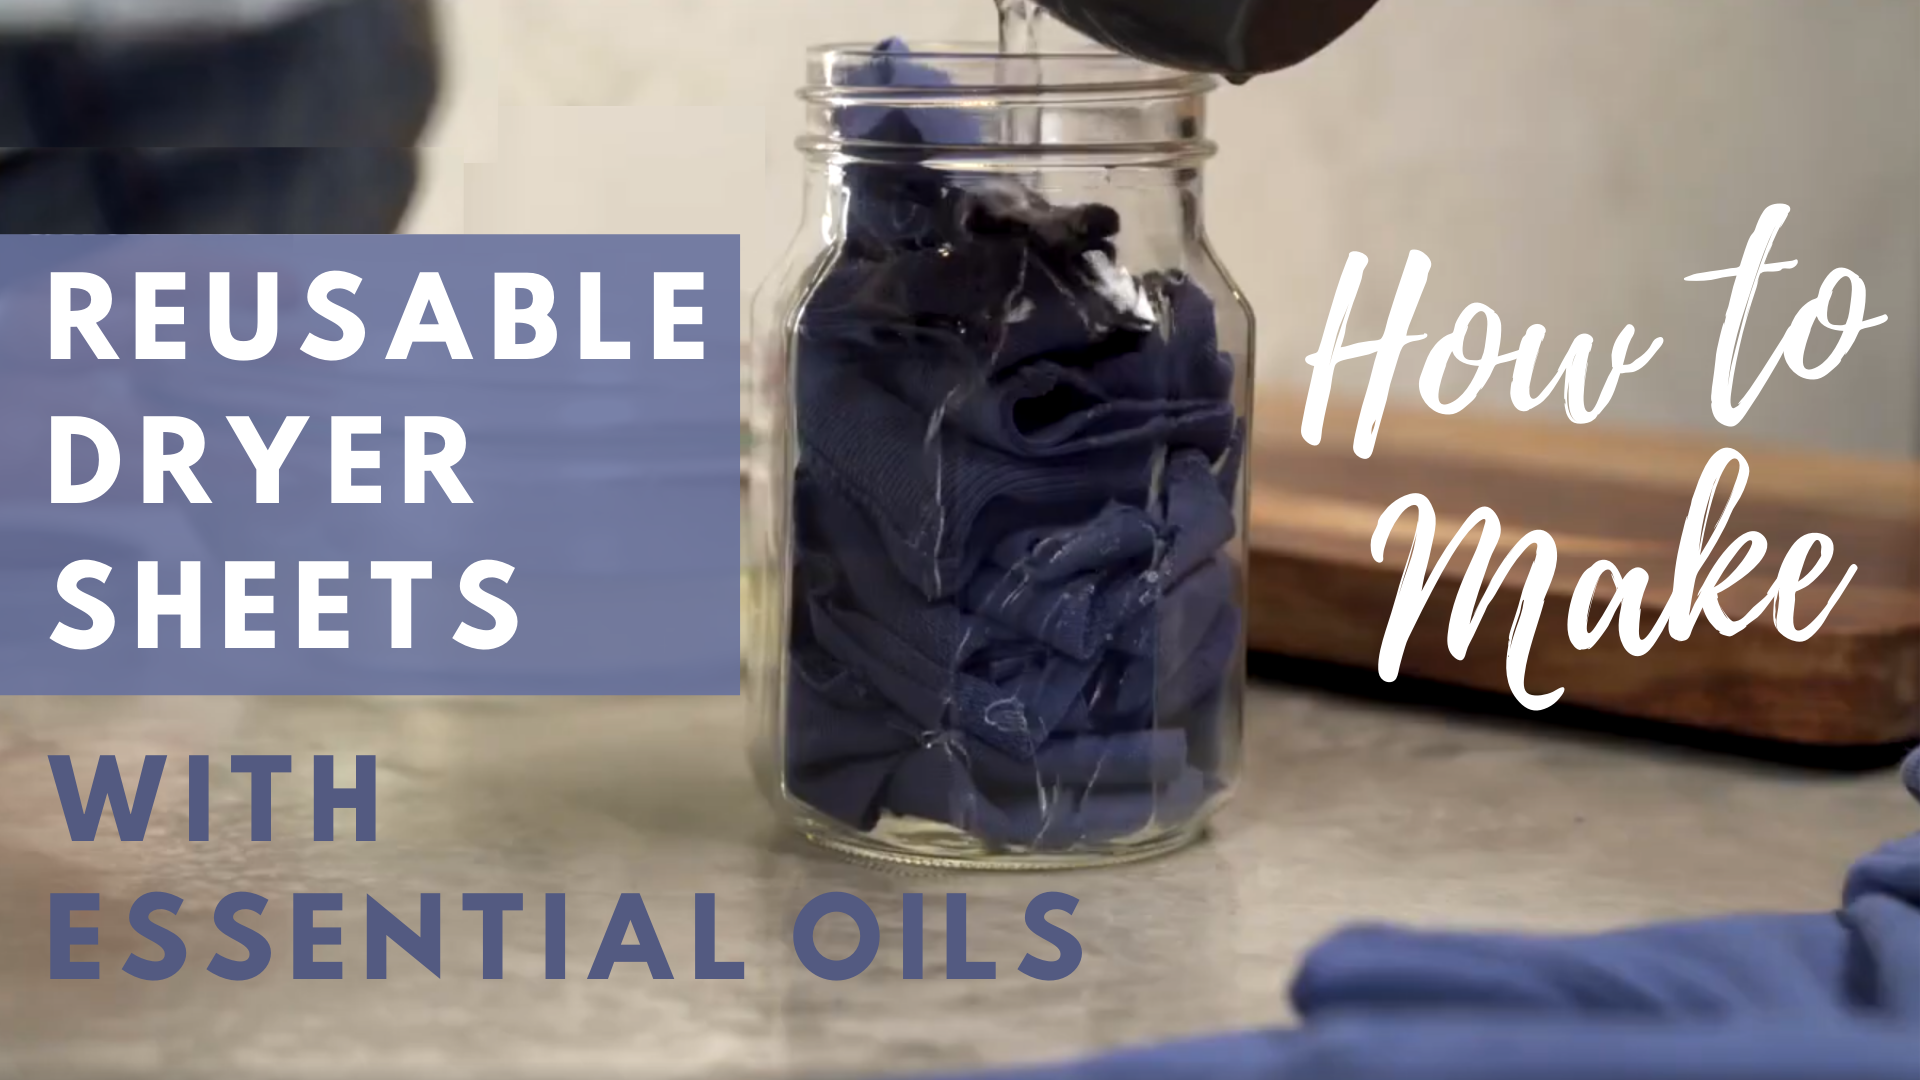 How to make reusable dryer sheets with essential oils